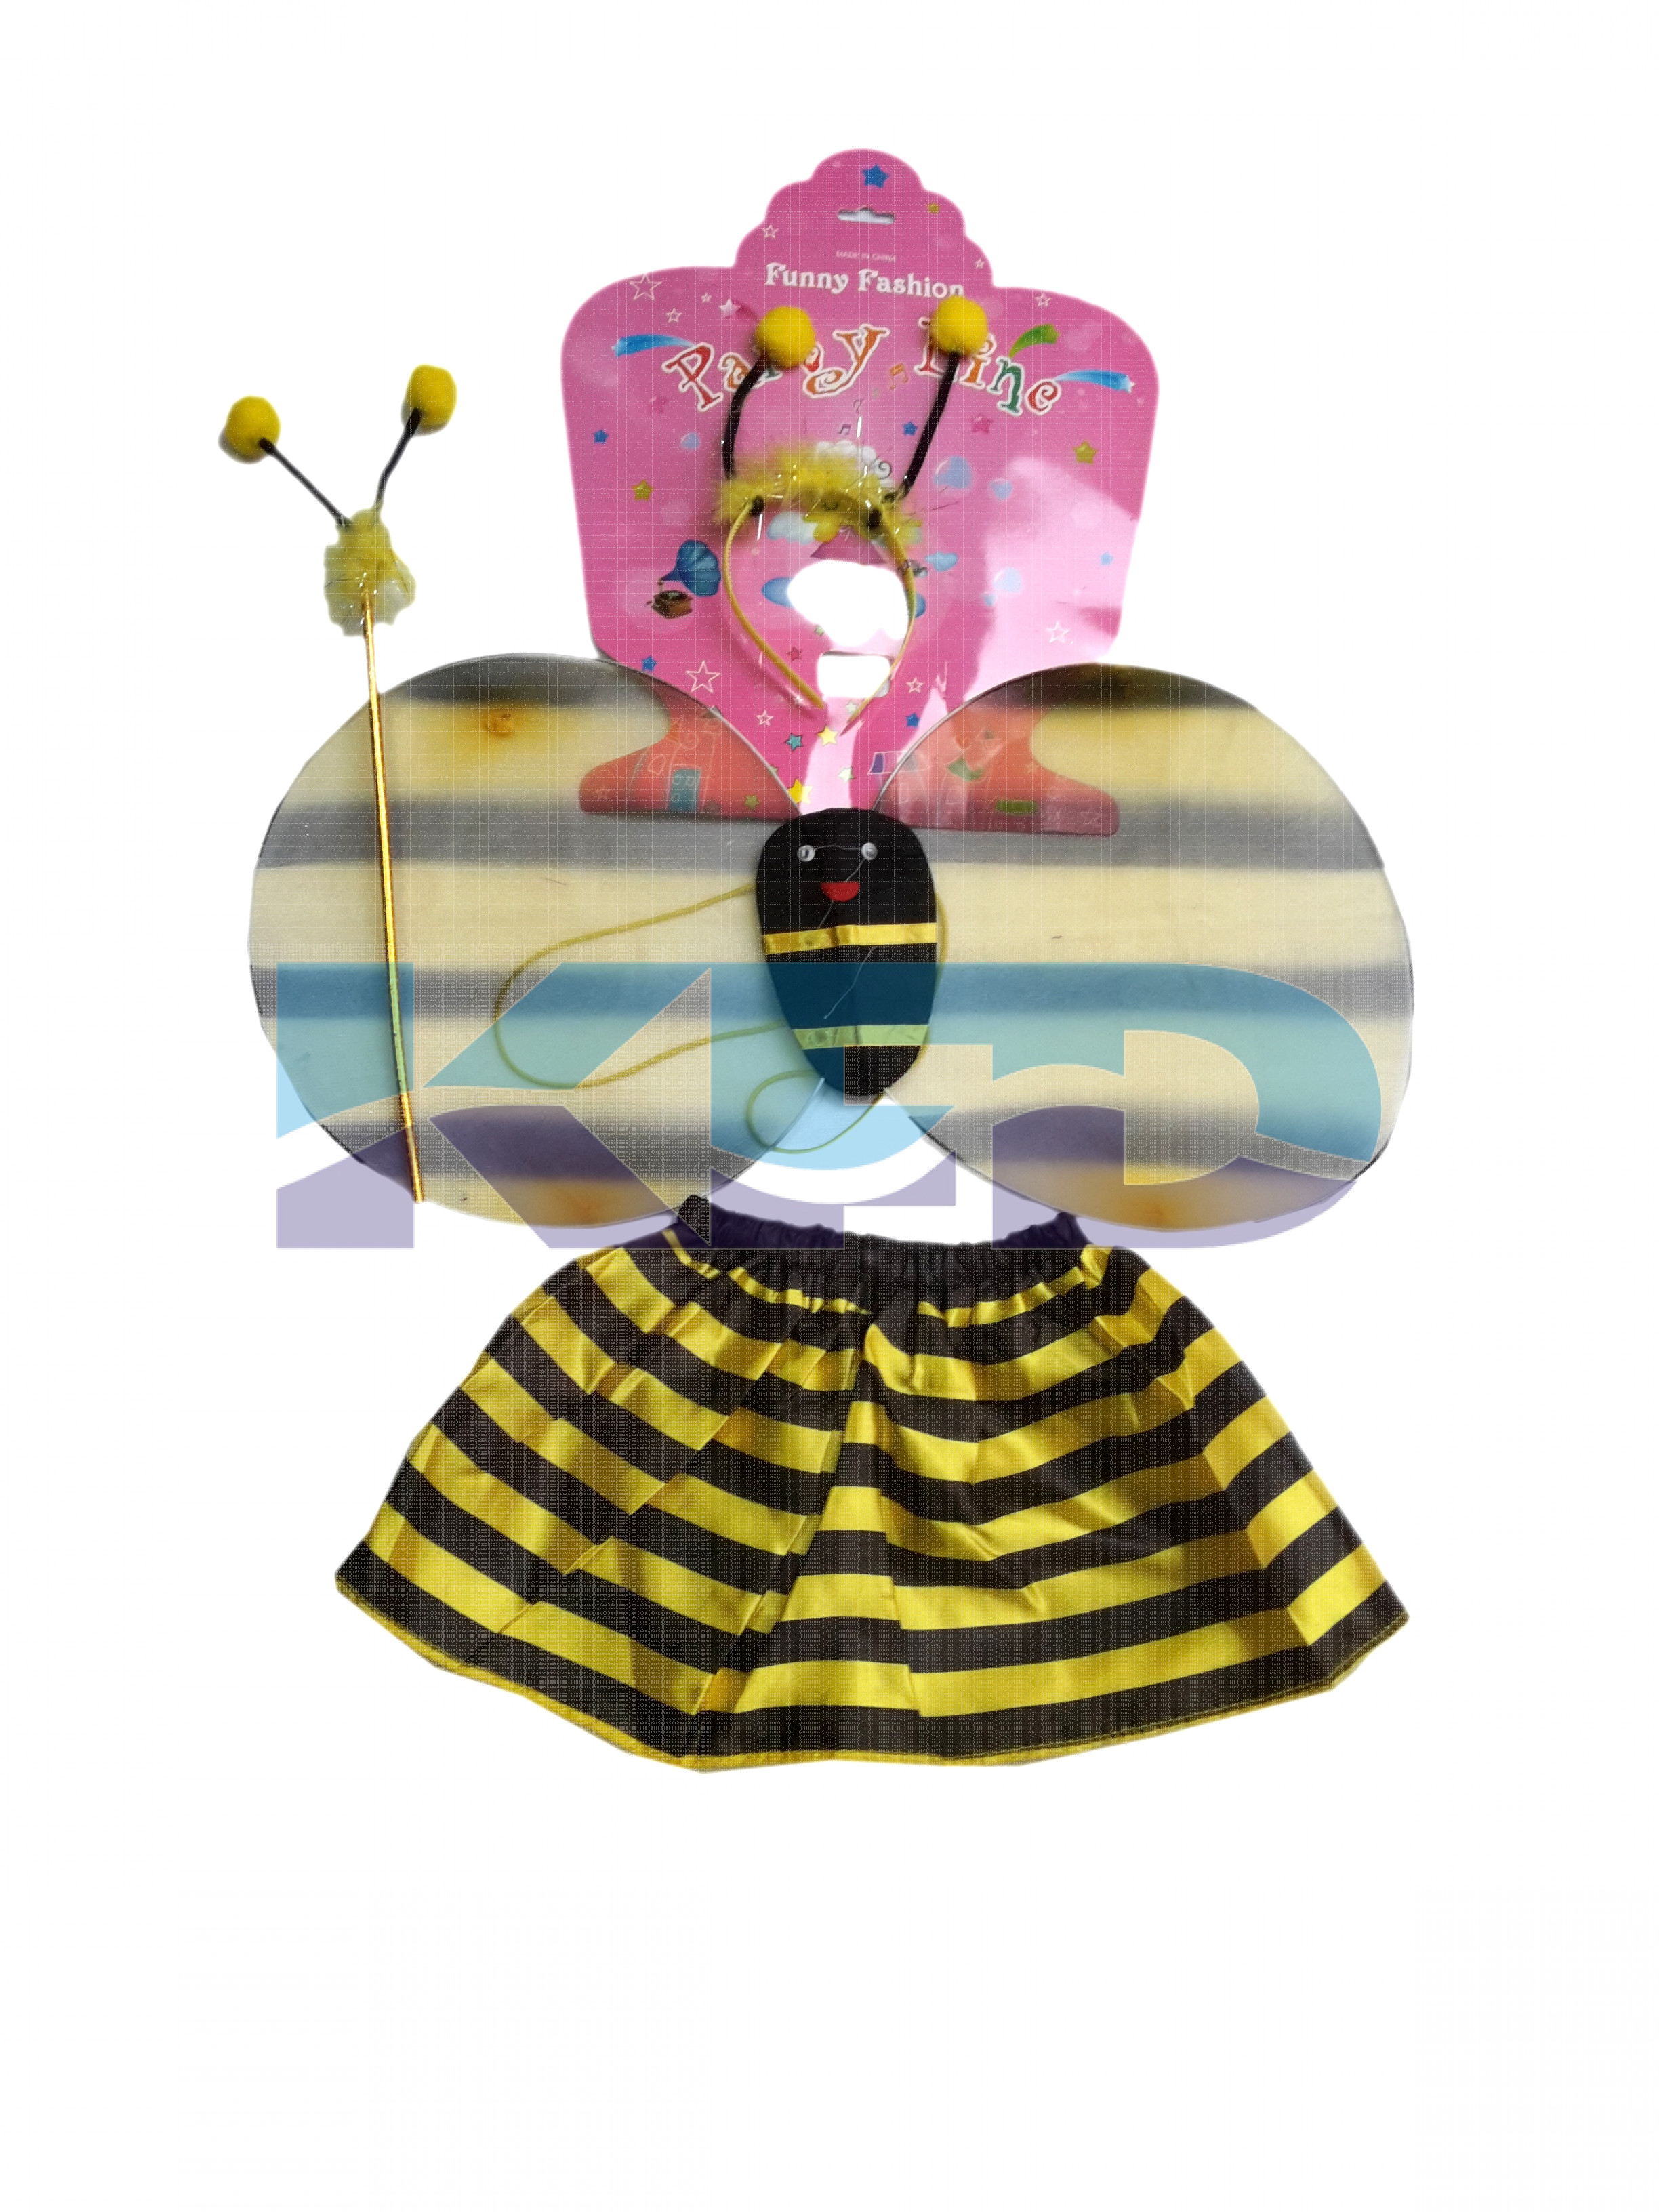 Bumble bee Accessories for kids,boys and Girls